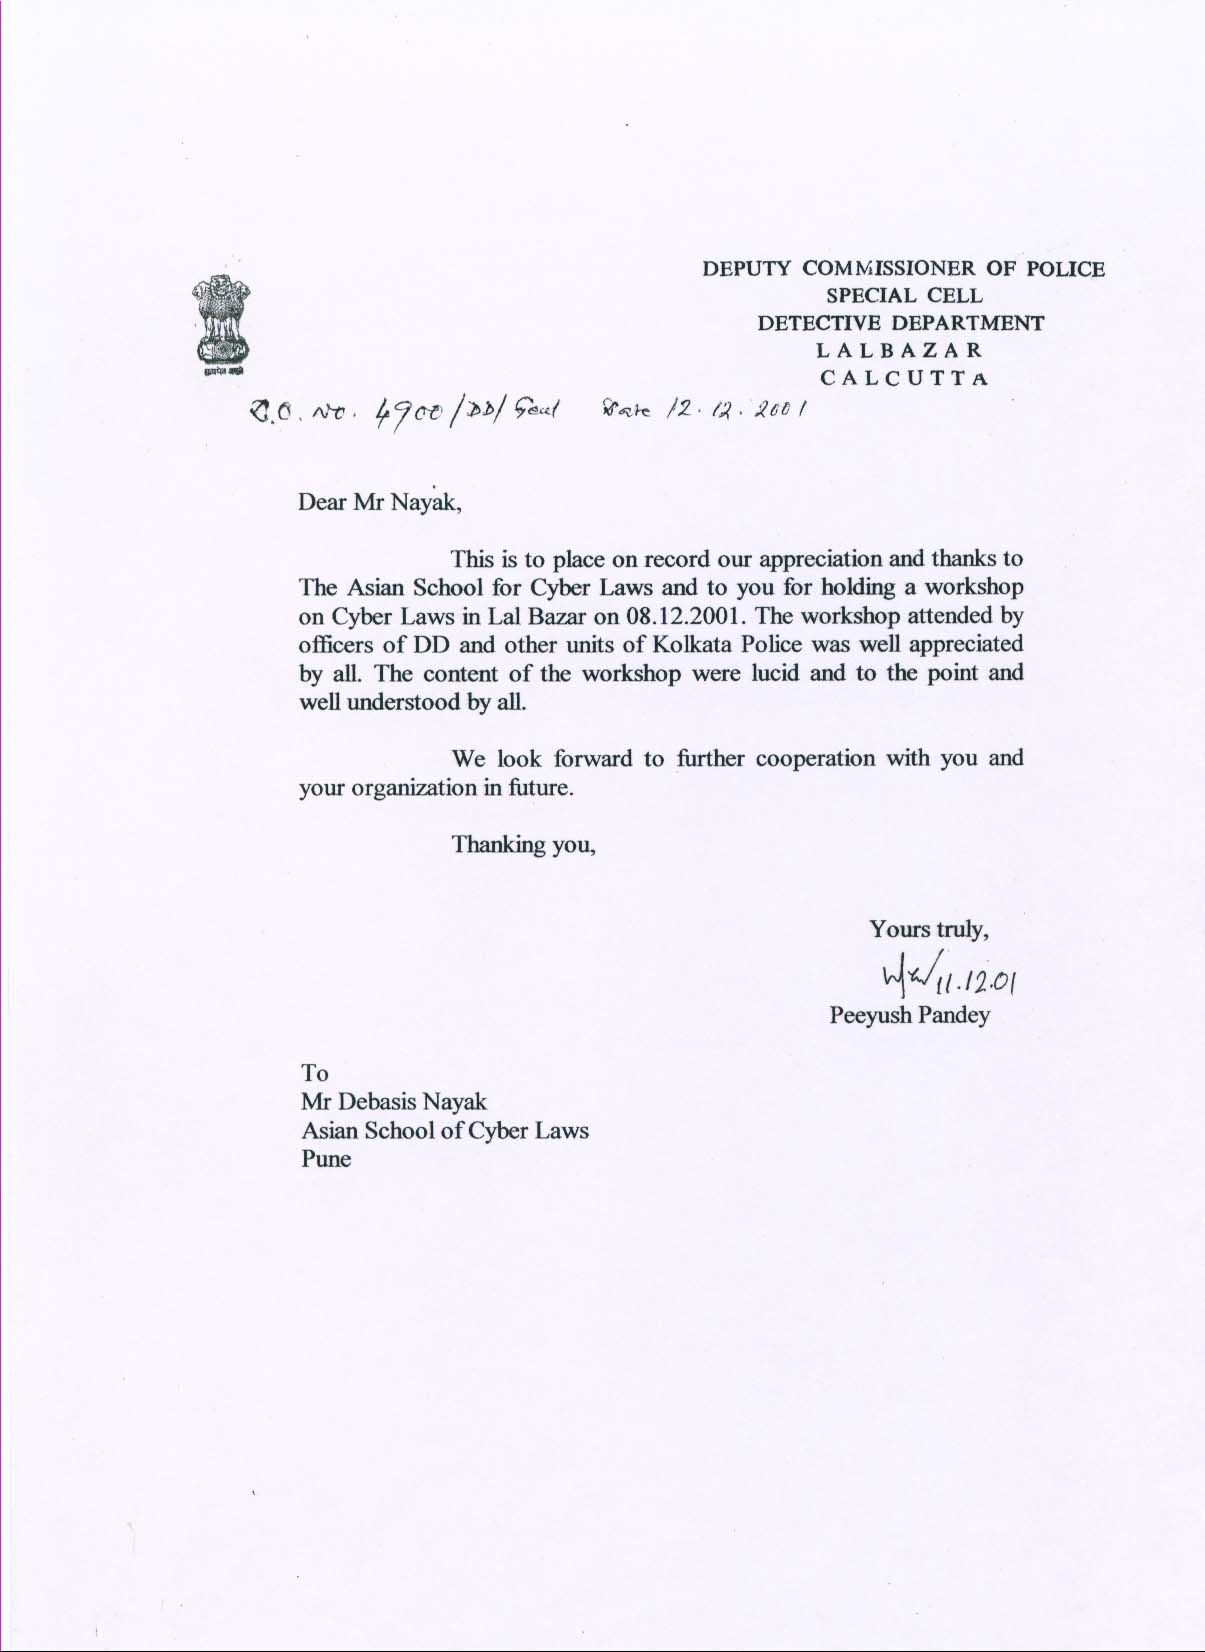 Letter Of Thanks From The Kolkata Police For A Workshop On Cyber